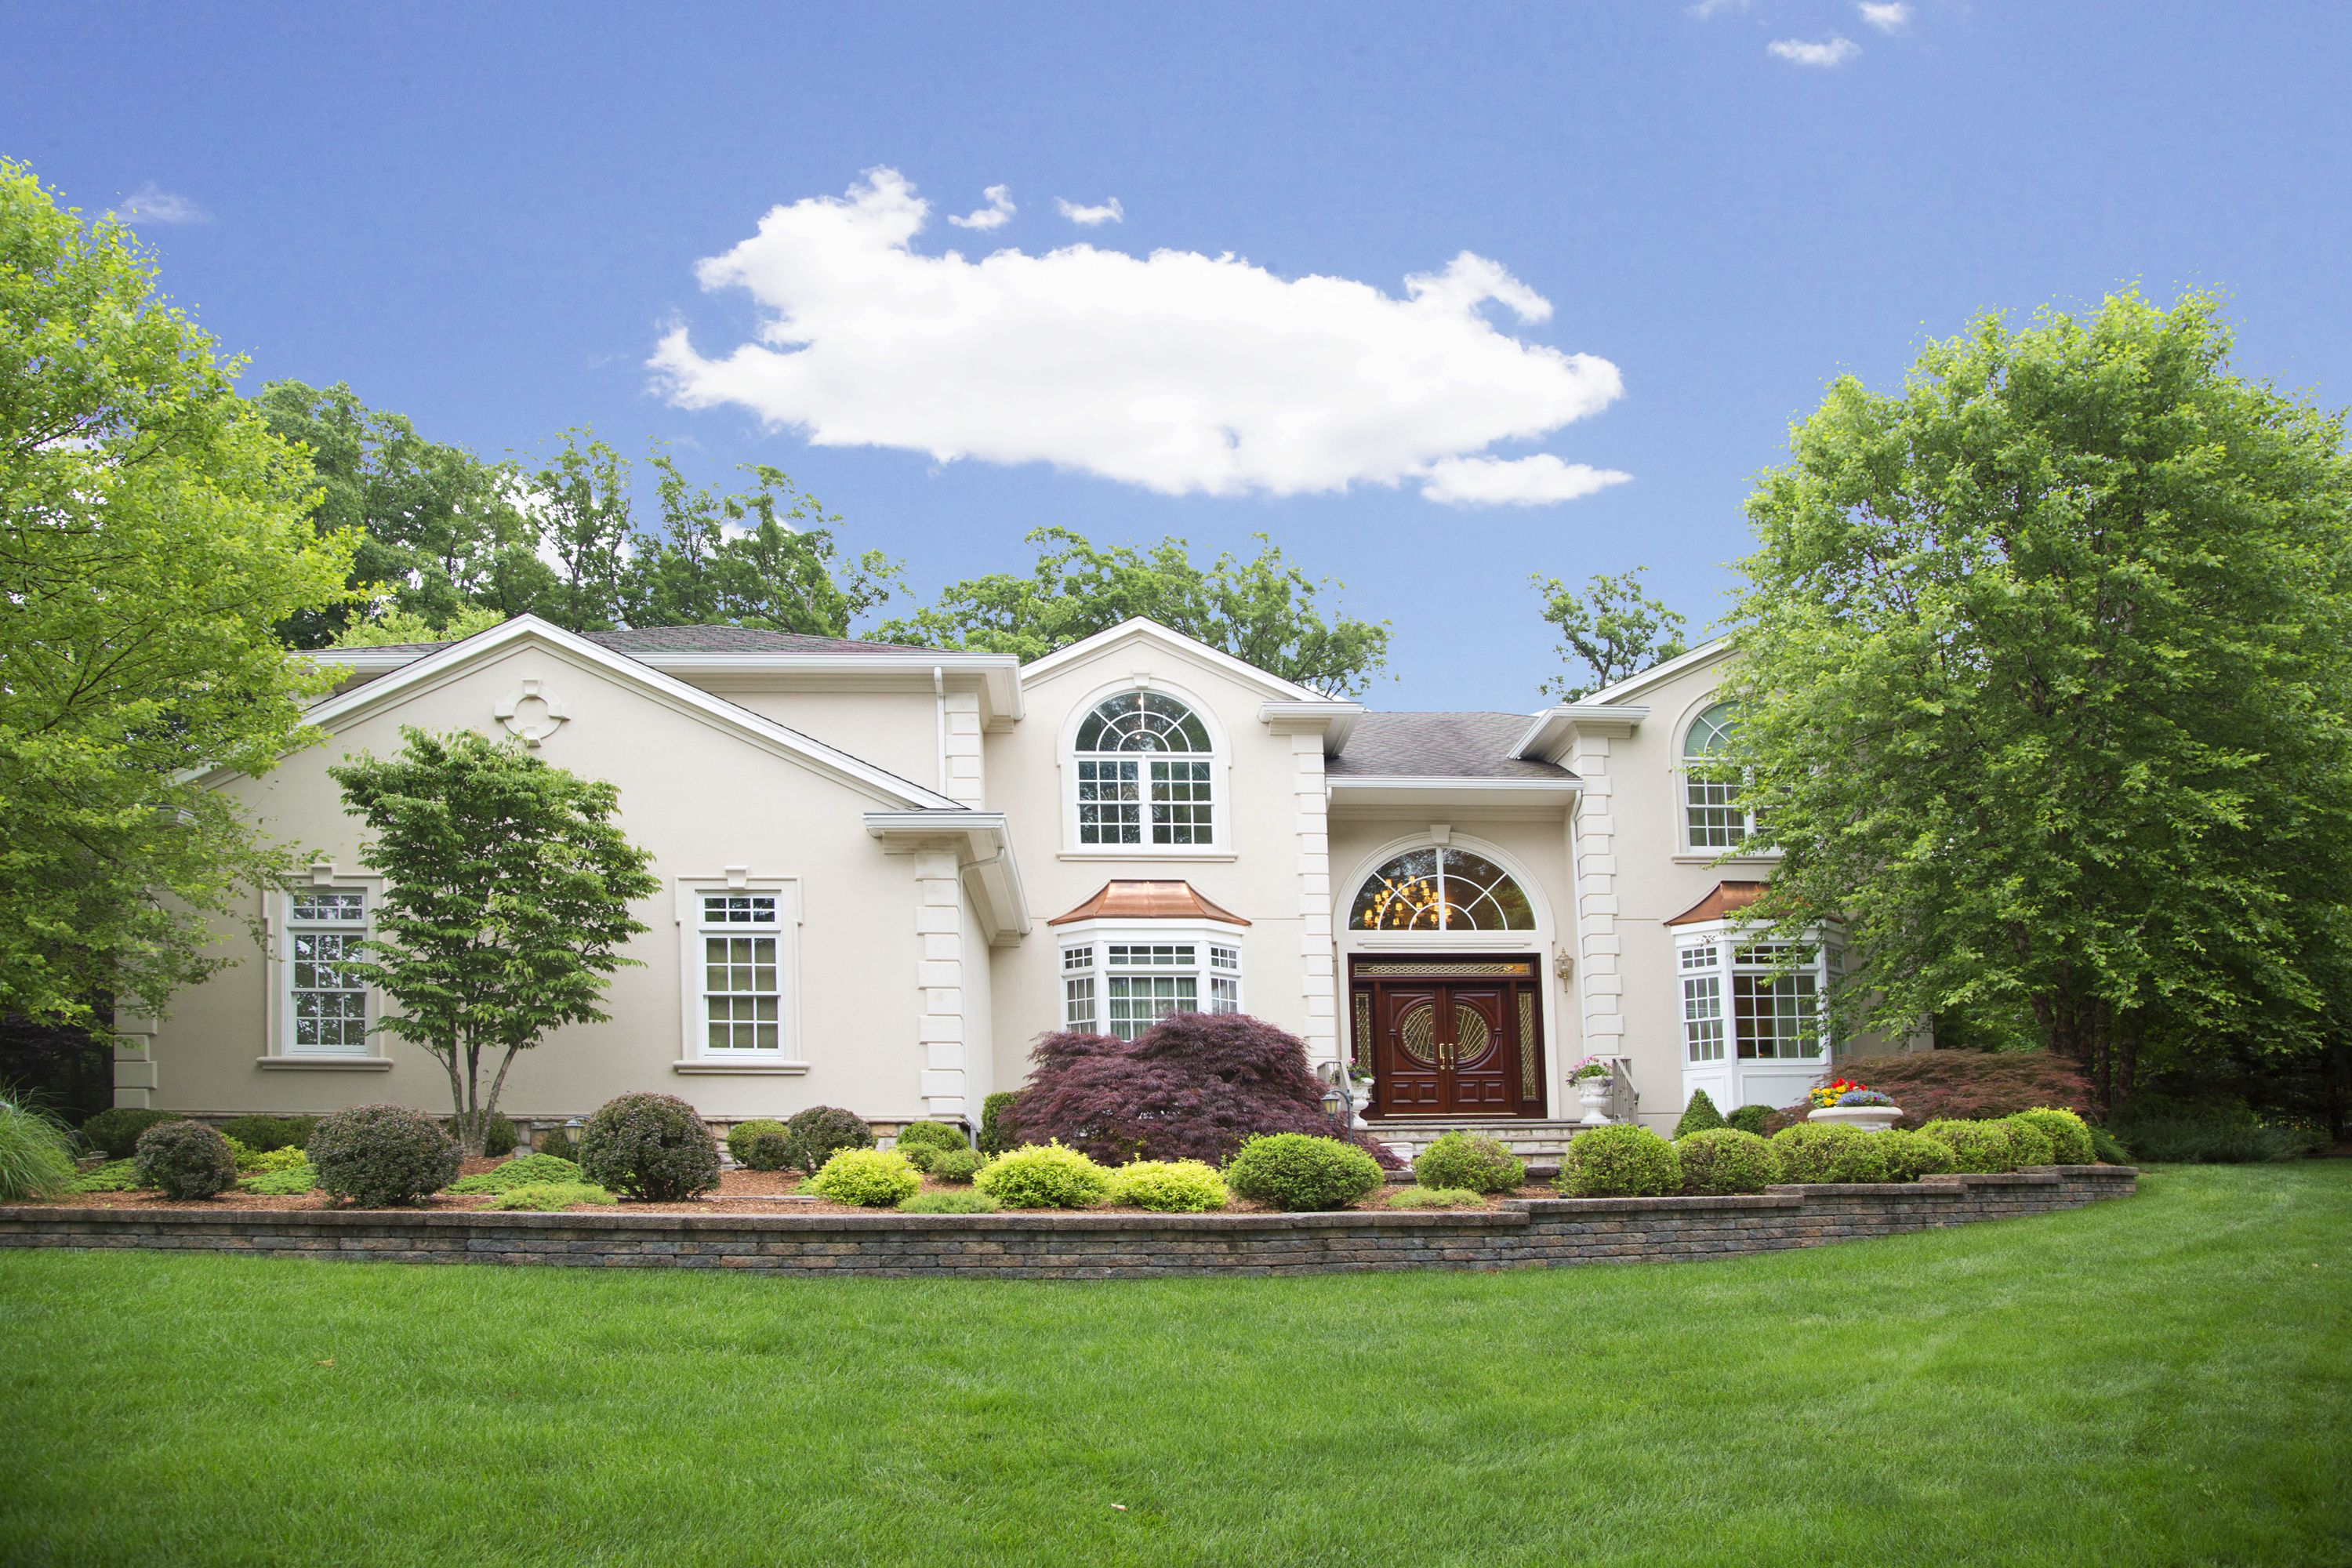 Maison unifamiliale pour l Vente à Custom Colonial 35 Wind Ridge Drive North Caldwell, New Jersey 07006 États-Unis